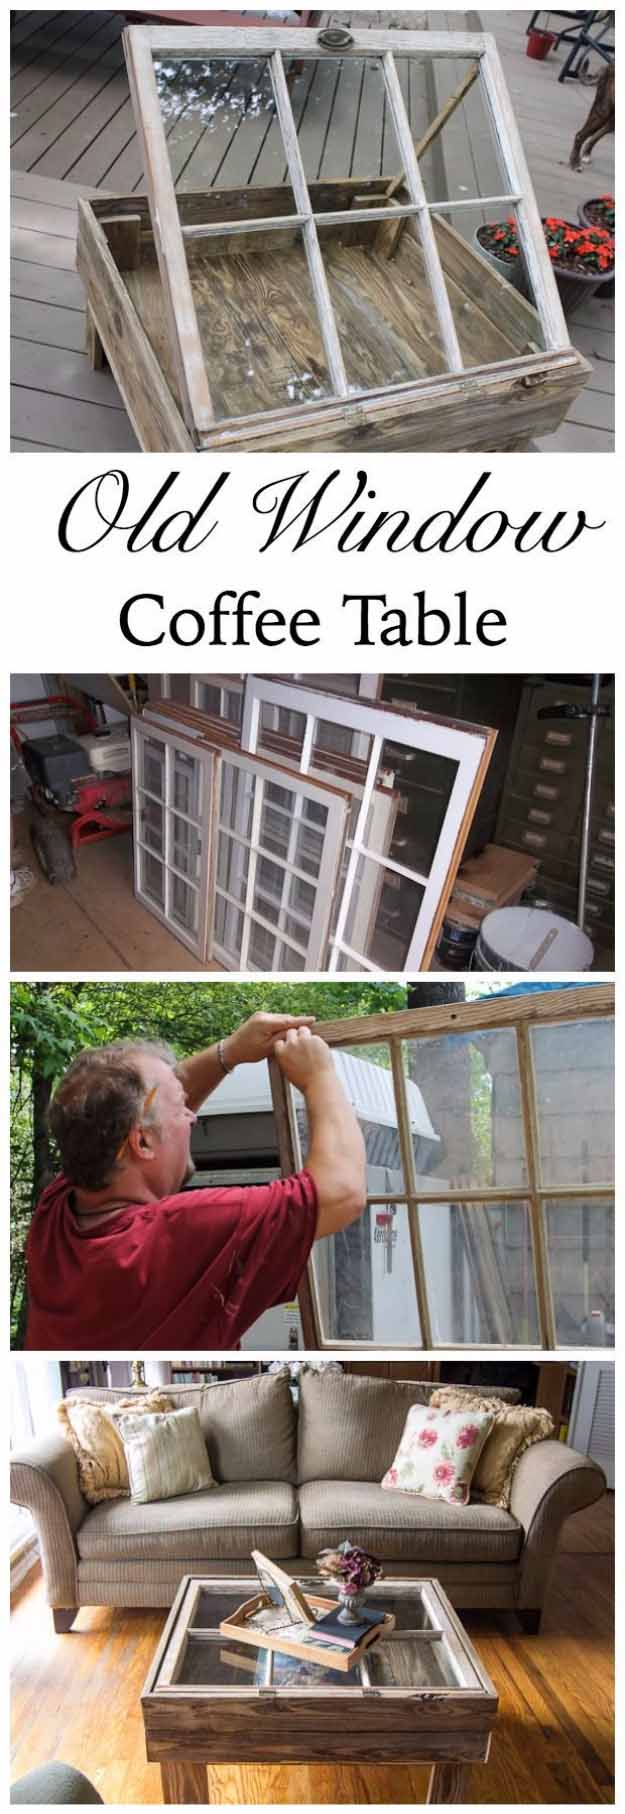 easy diy furniture ideas reuse easy diy furniture ideas upcycling projects with old windows rustic coffee table 16